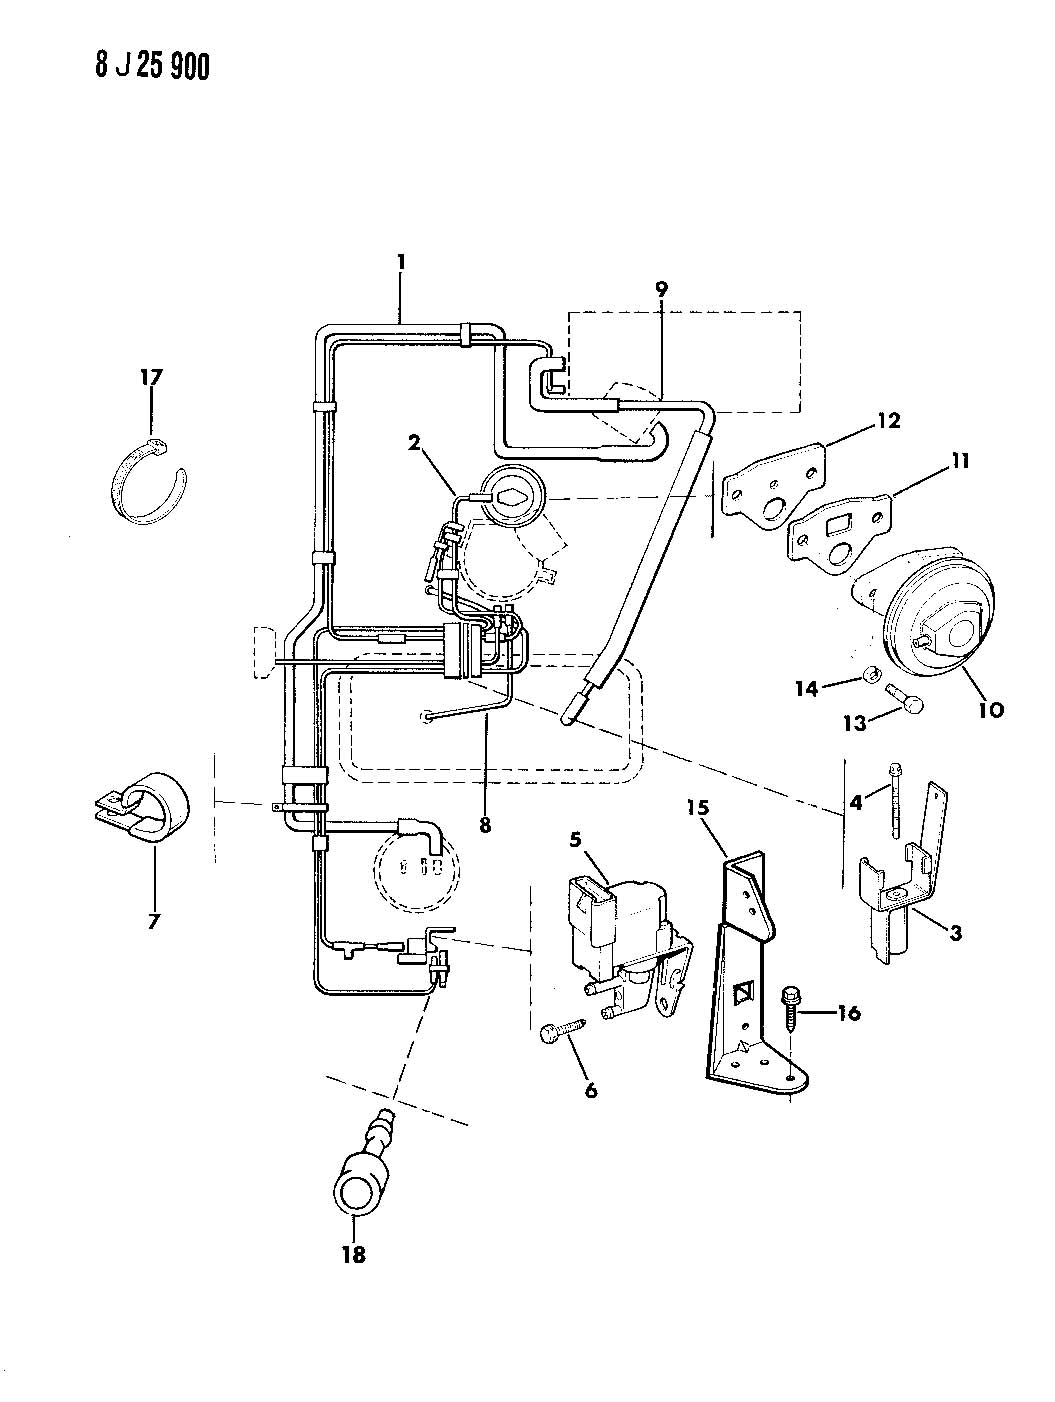 Jeep 4 2 Engine Diagram Wiring Library For 1990 Wrangler Fuel System